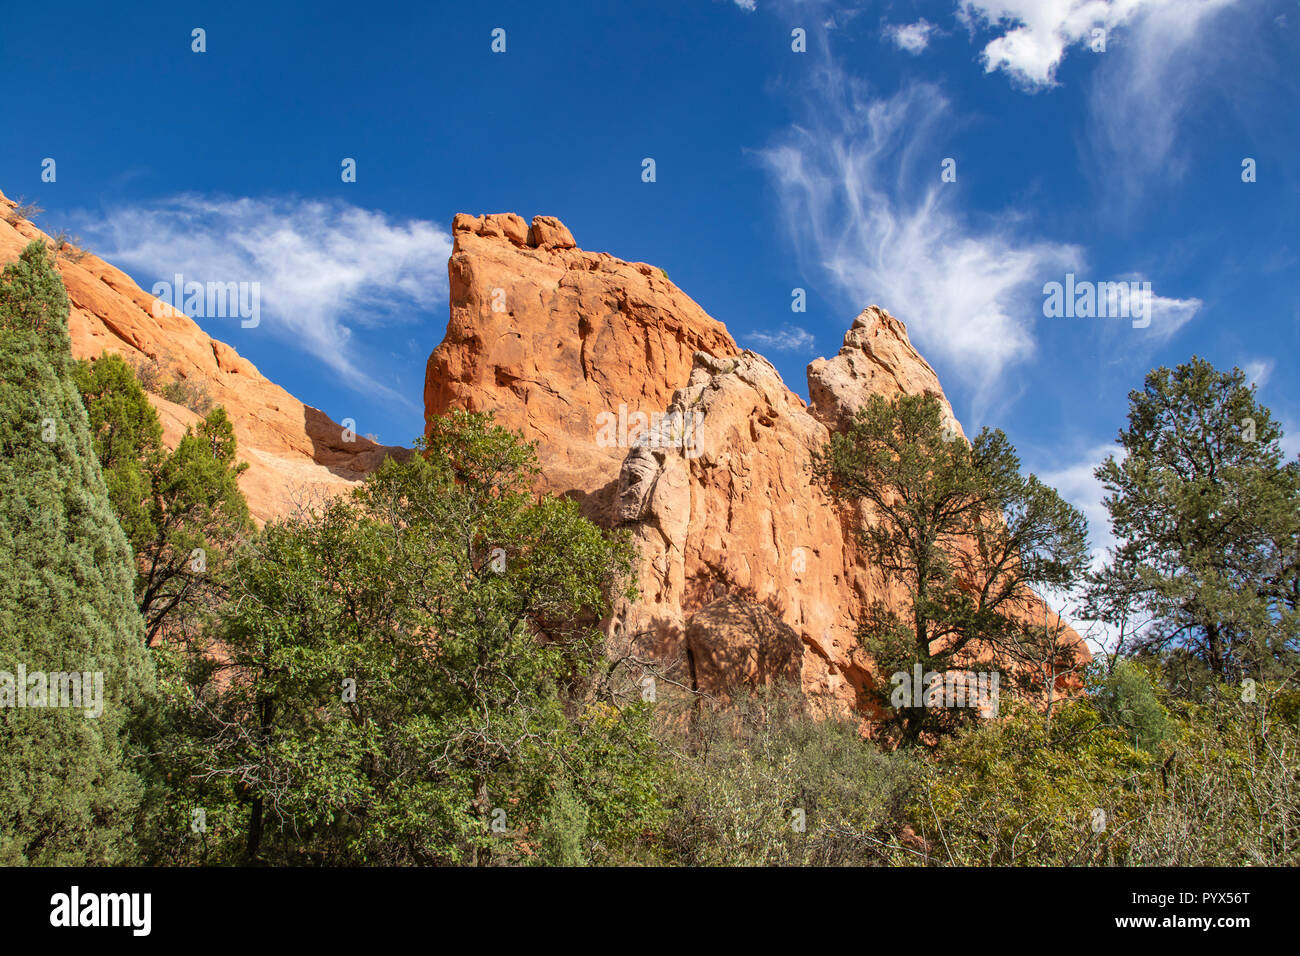 Garden of the Gods in Colorado Springs - huge red rock bluffs jut upwards against dramatic blue sky with whispy clouds Stock Photo